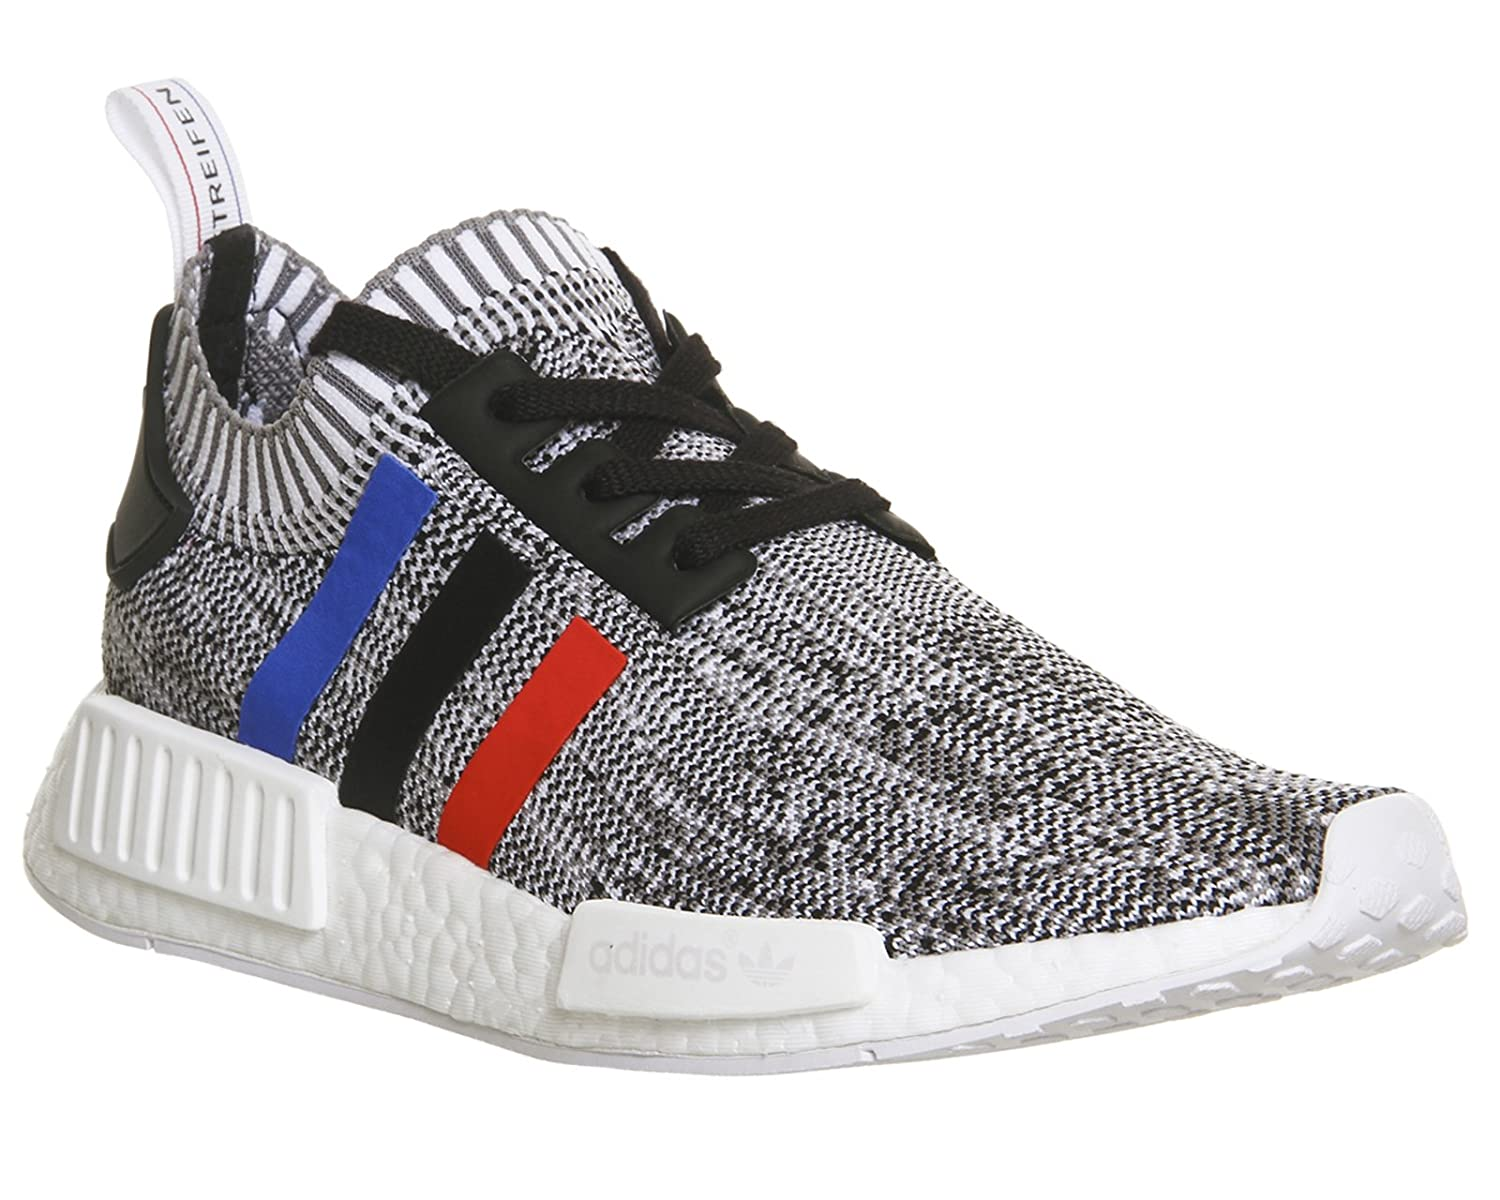 best sneakers 2880a 66c3b Adidas NMD R1 PK Primeknit Tri-Color Grey White Multi BB2888 ...